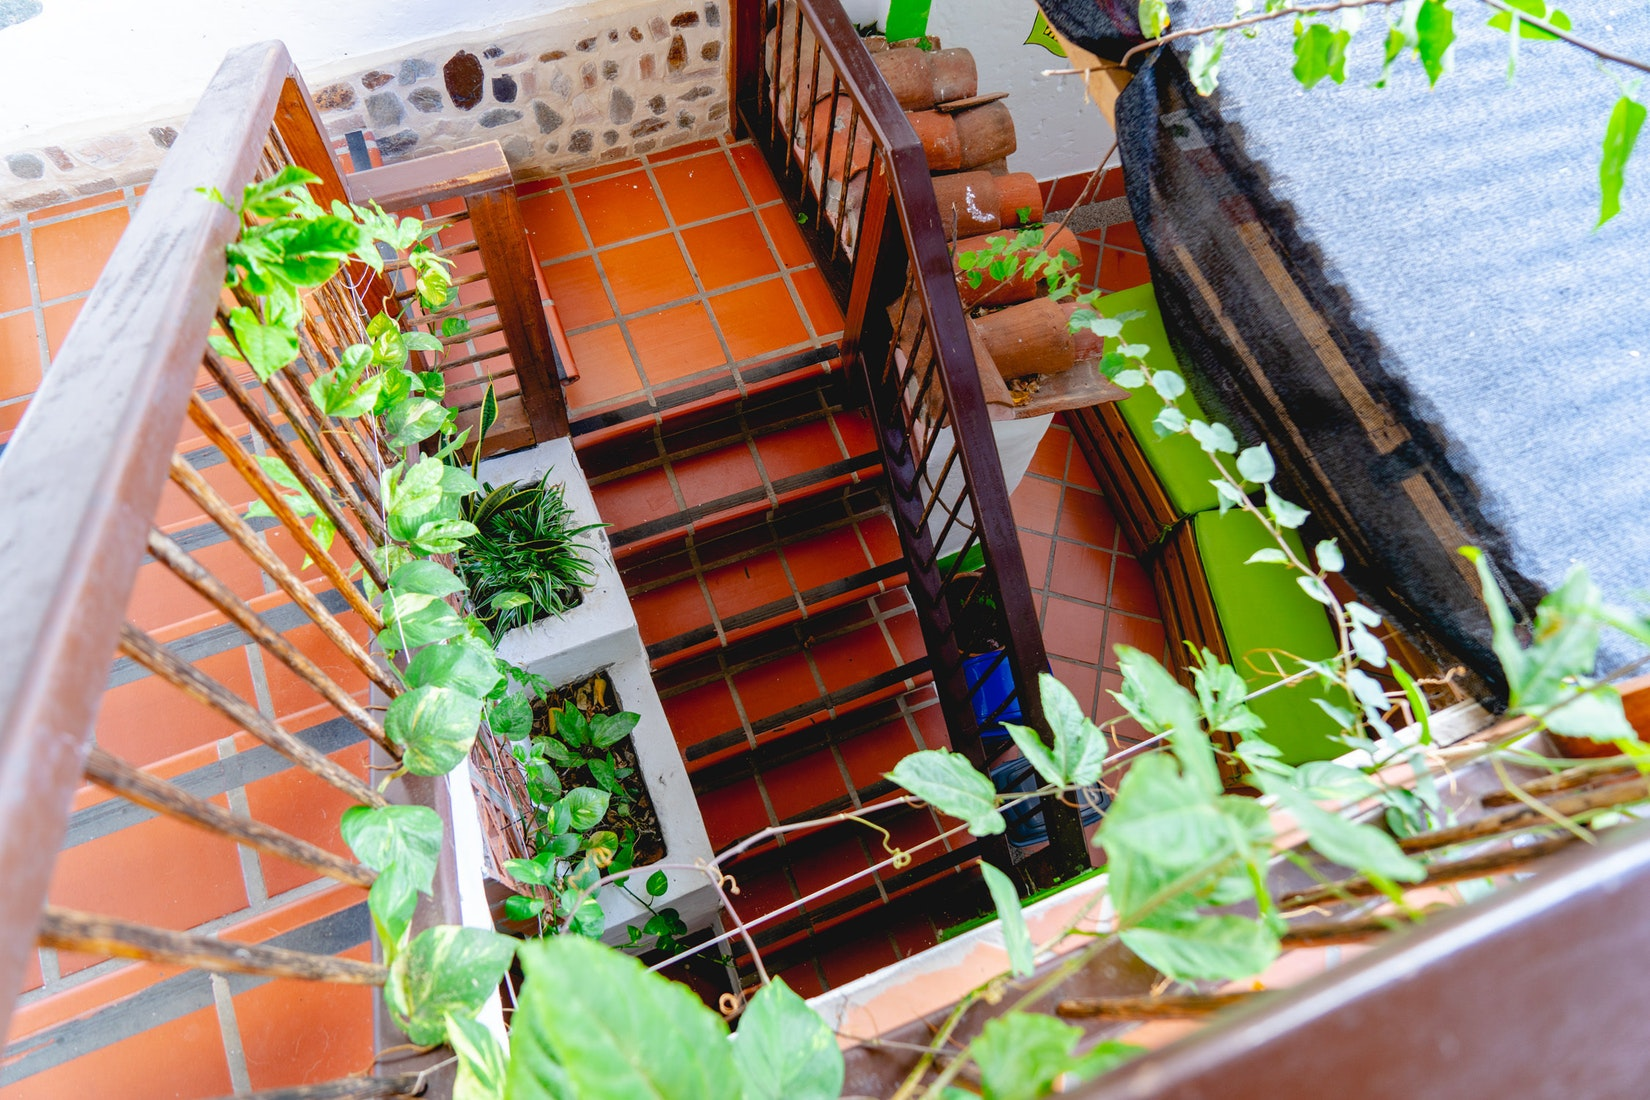 Wooden staircase framed by leafy green vines